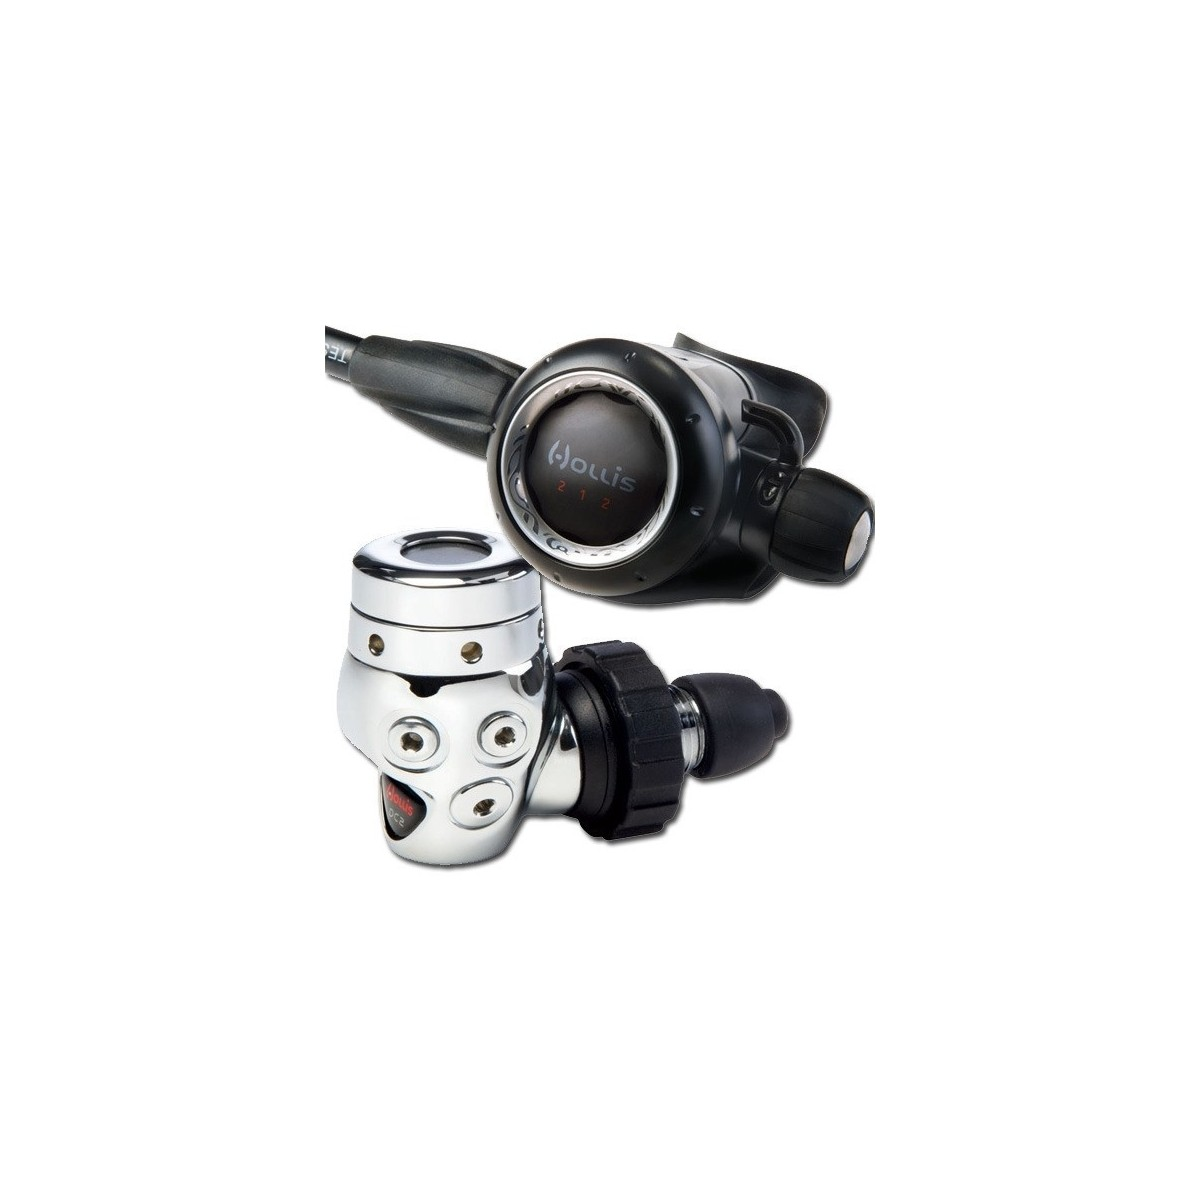 Hollis 212- DC2 DIN Scuba Regulator W/ Max Flex Hose